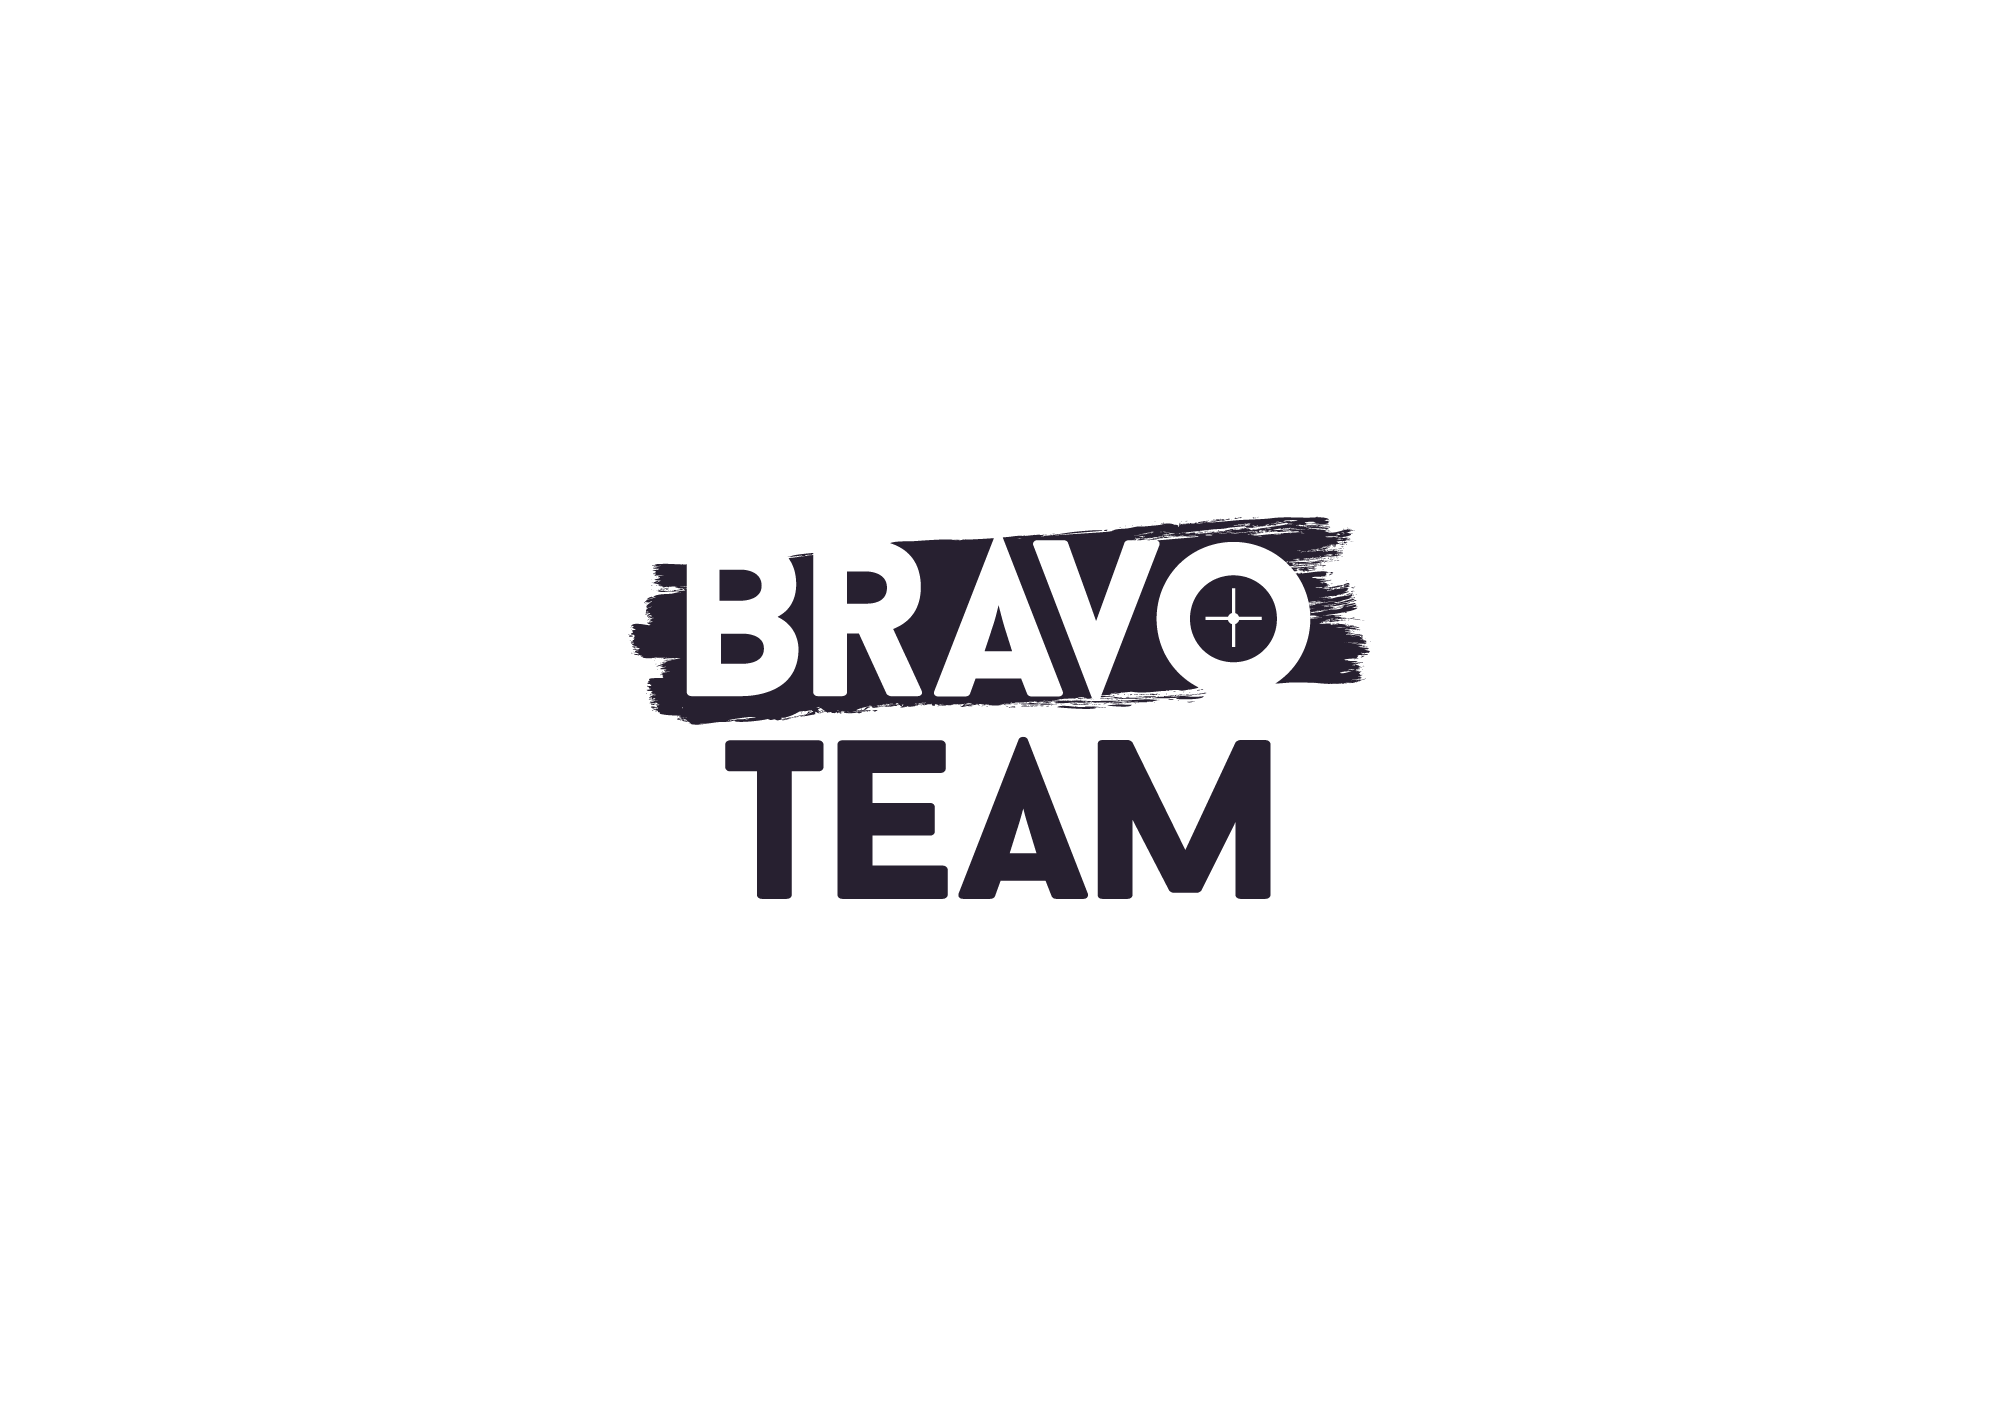 Bravo Team - for PlayStation VR